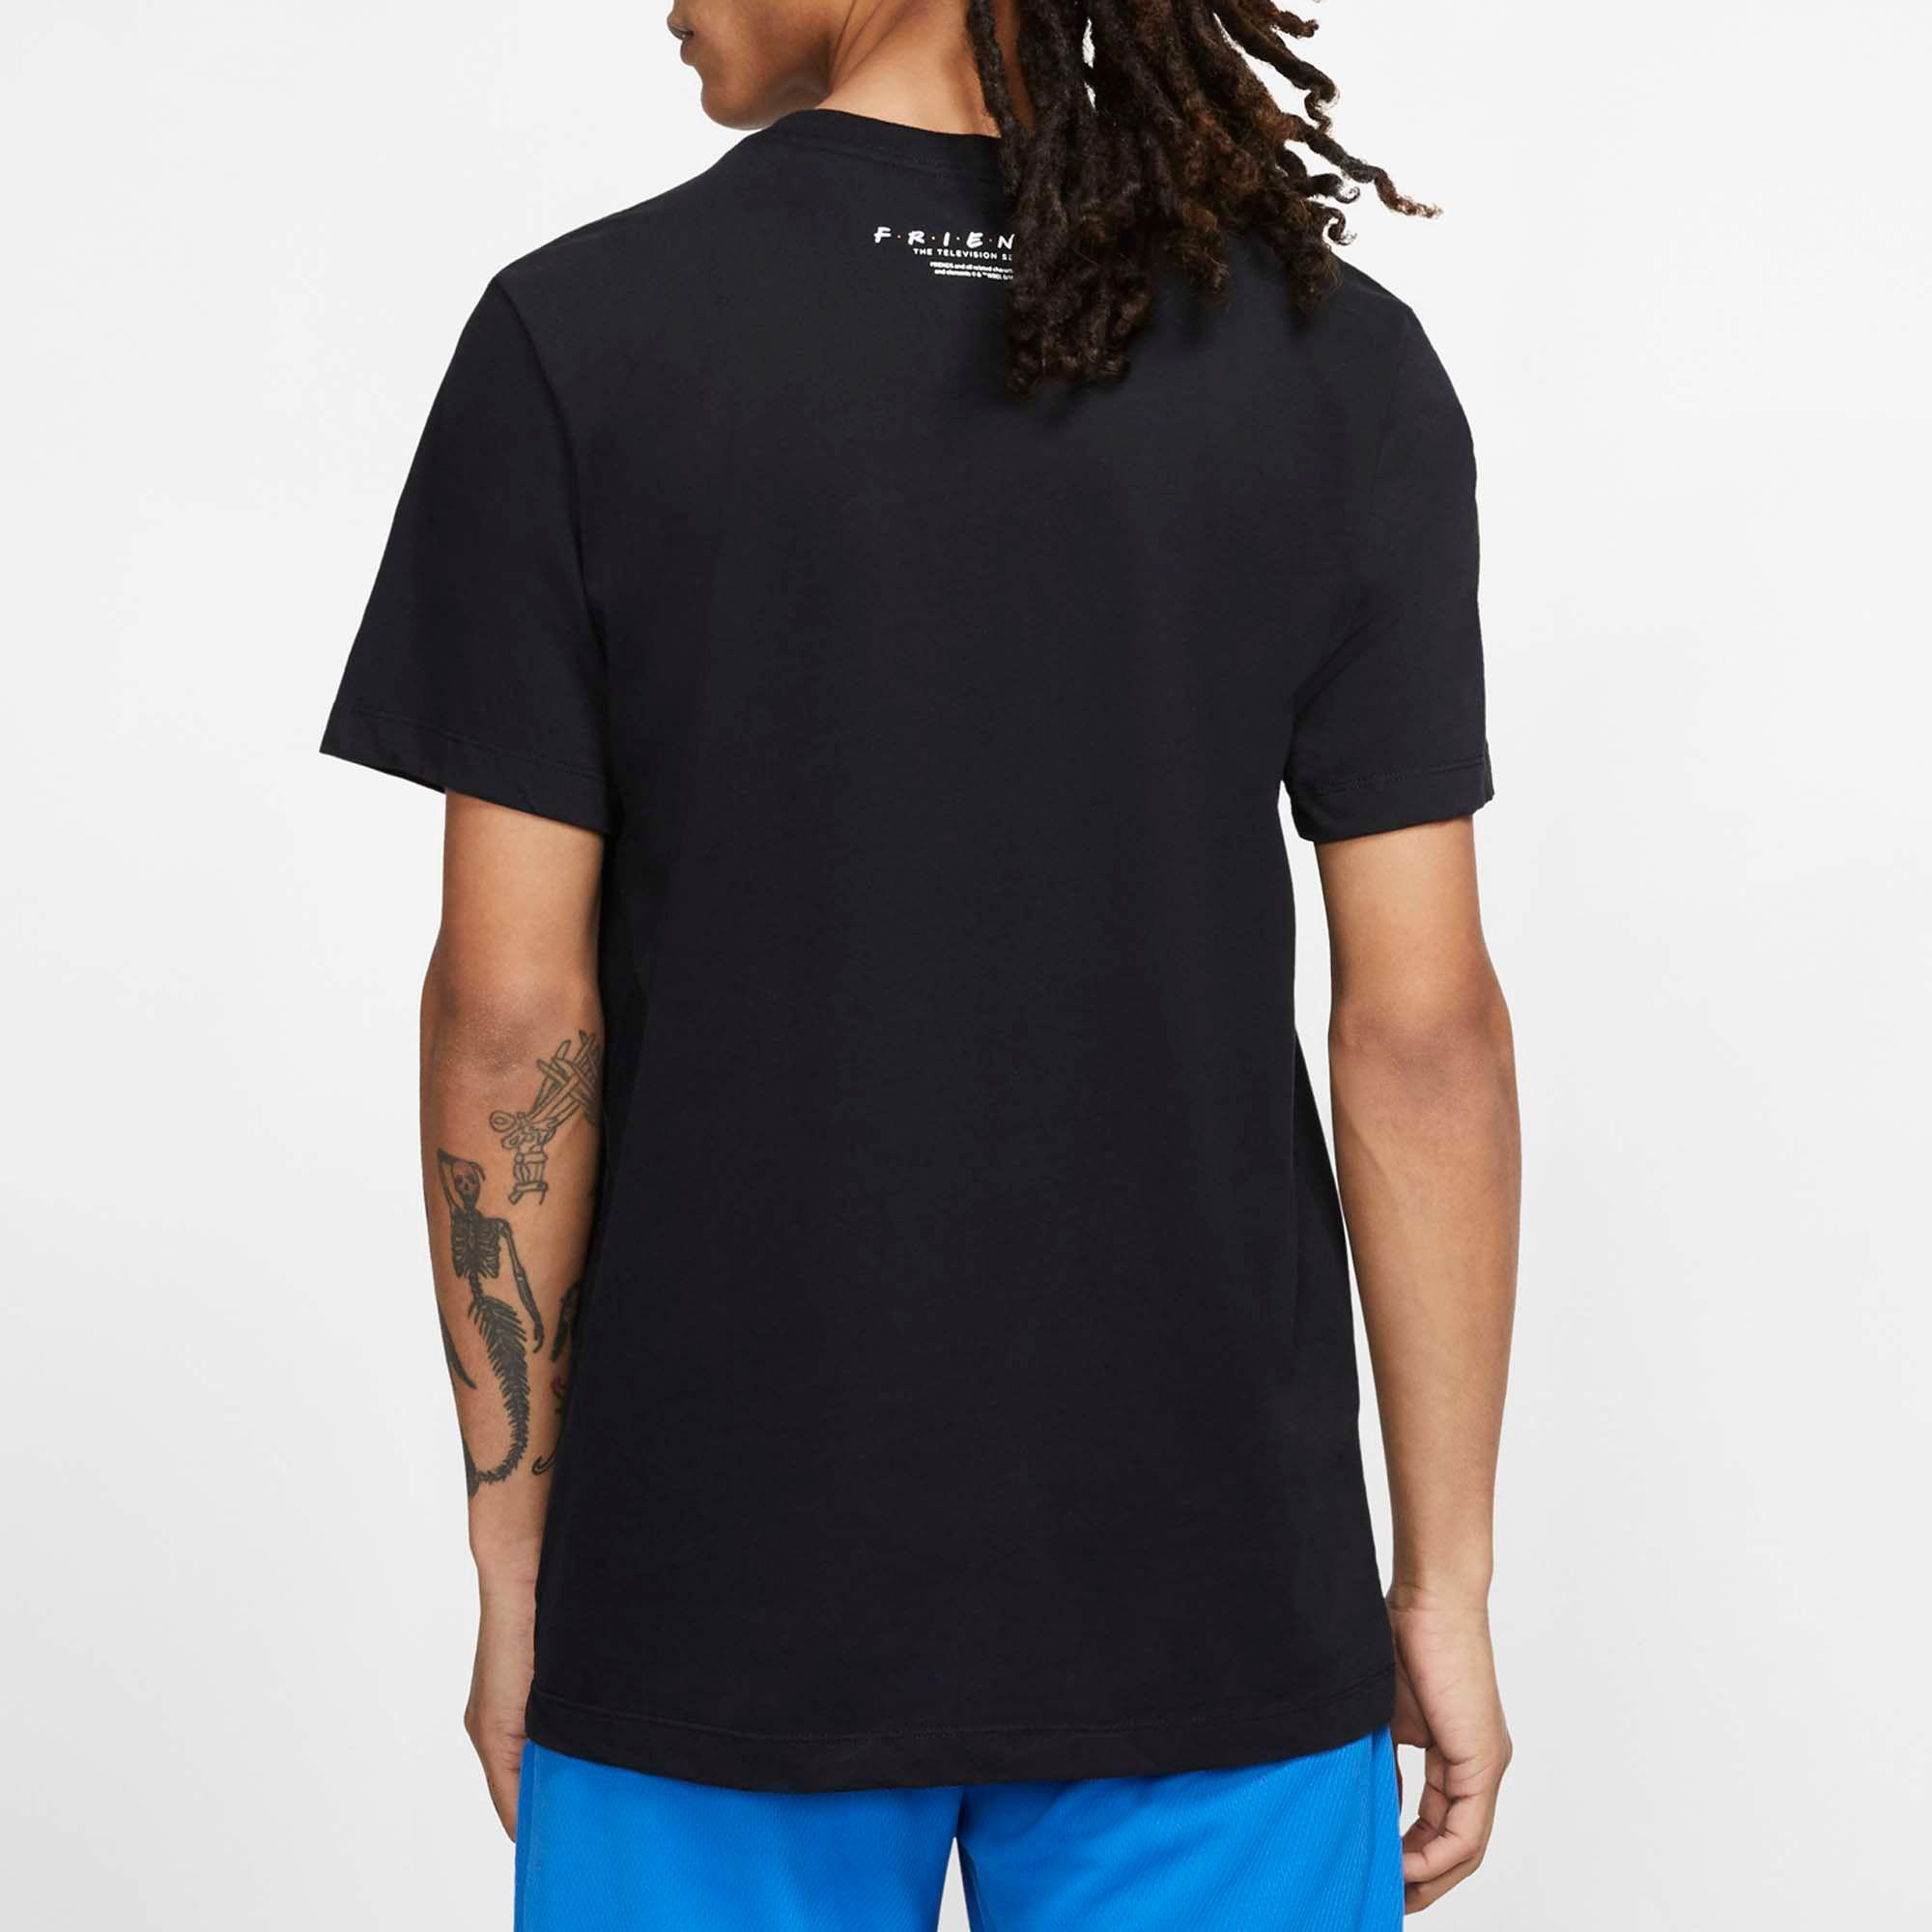 new product 89093 8df8f Nike - Black Dry Kyrie Irving Friends Graphic Tee for Men - Lyst. View  fullscreen